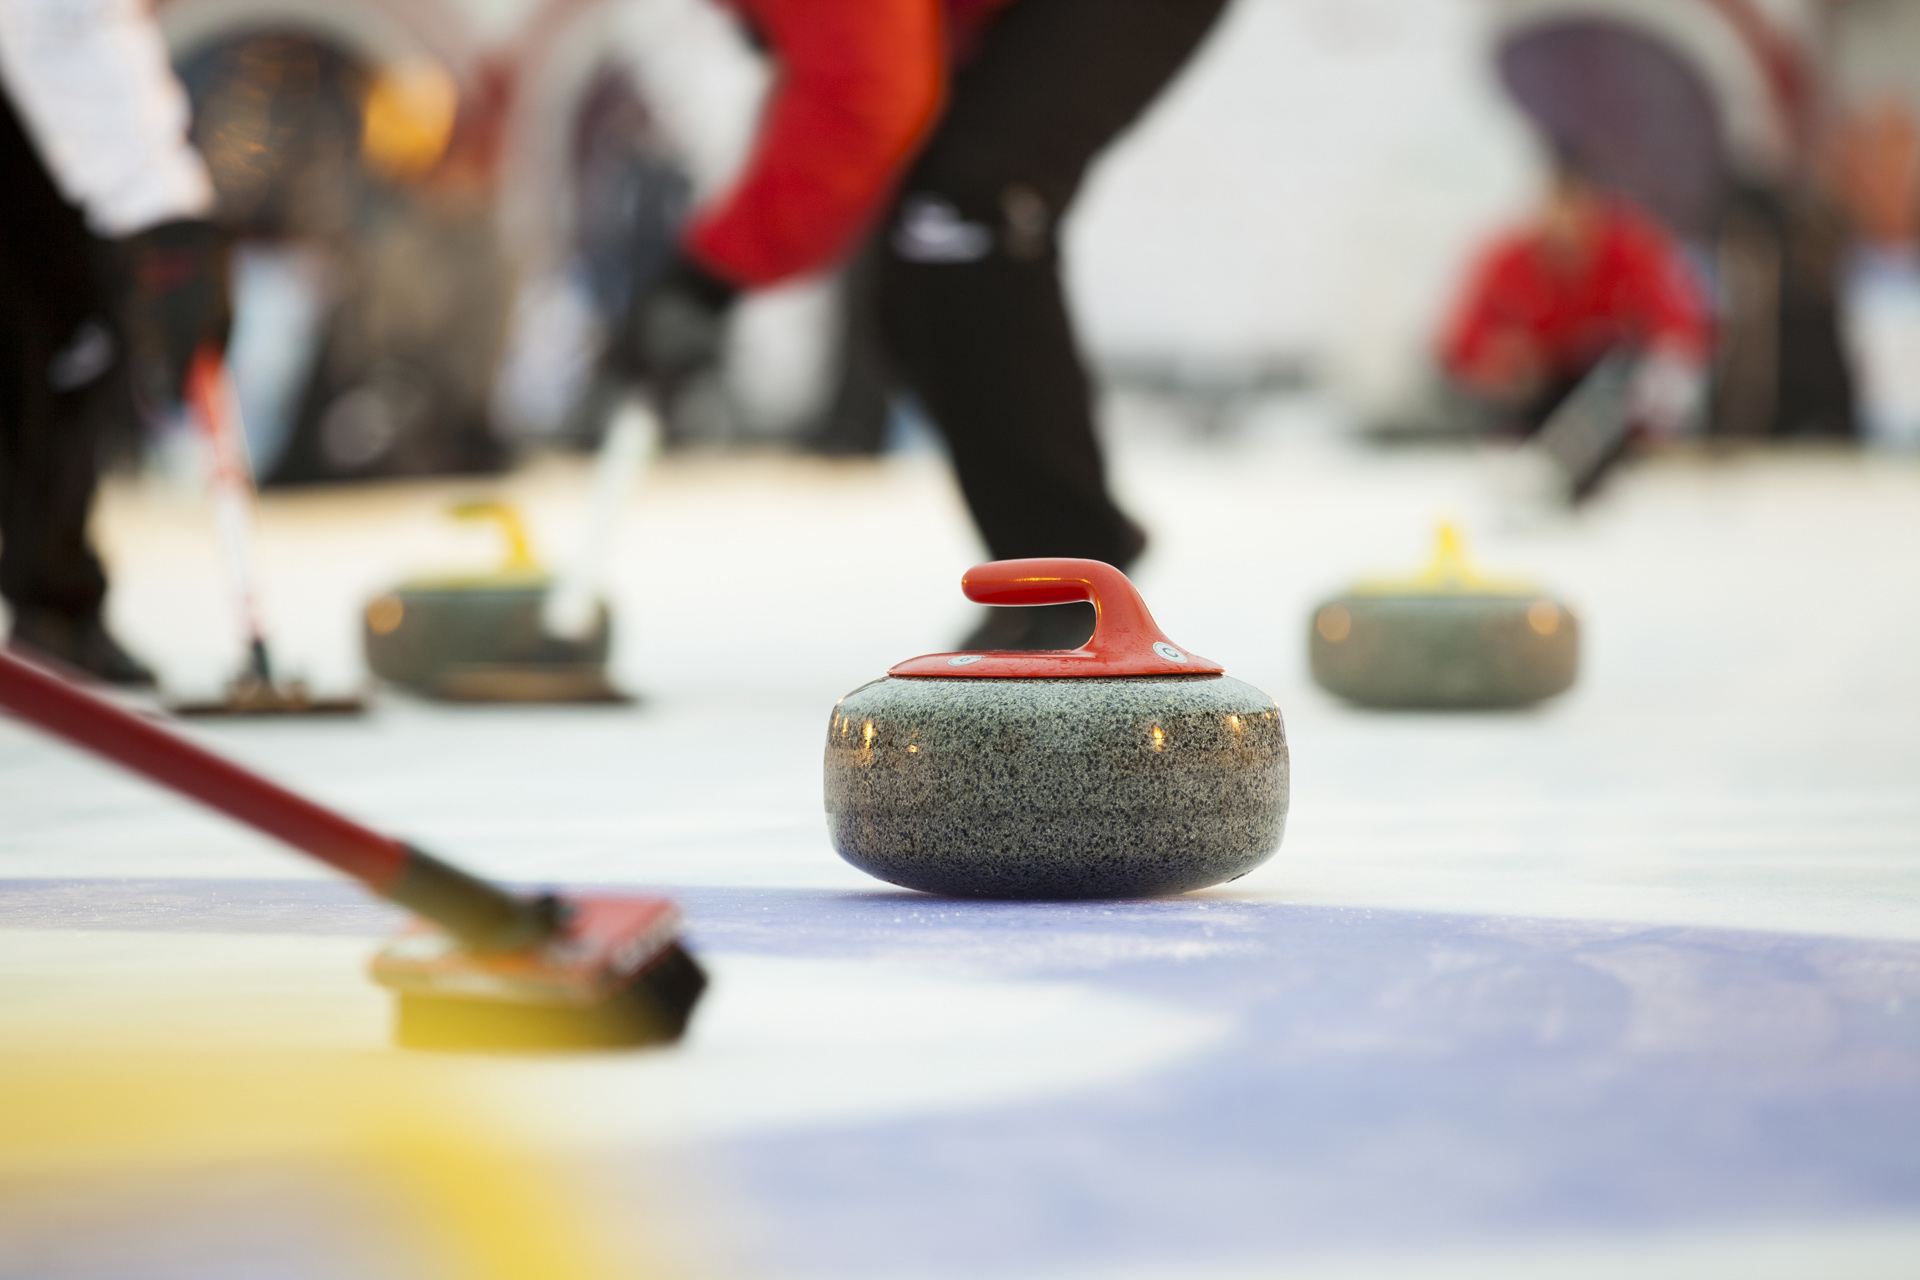 Winter fun curling